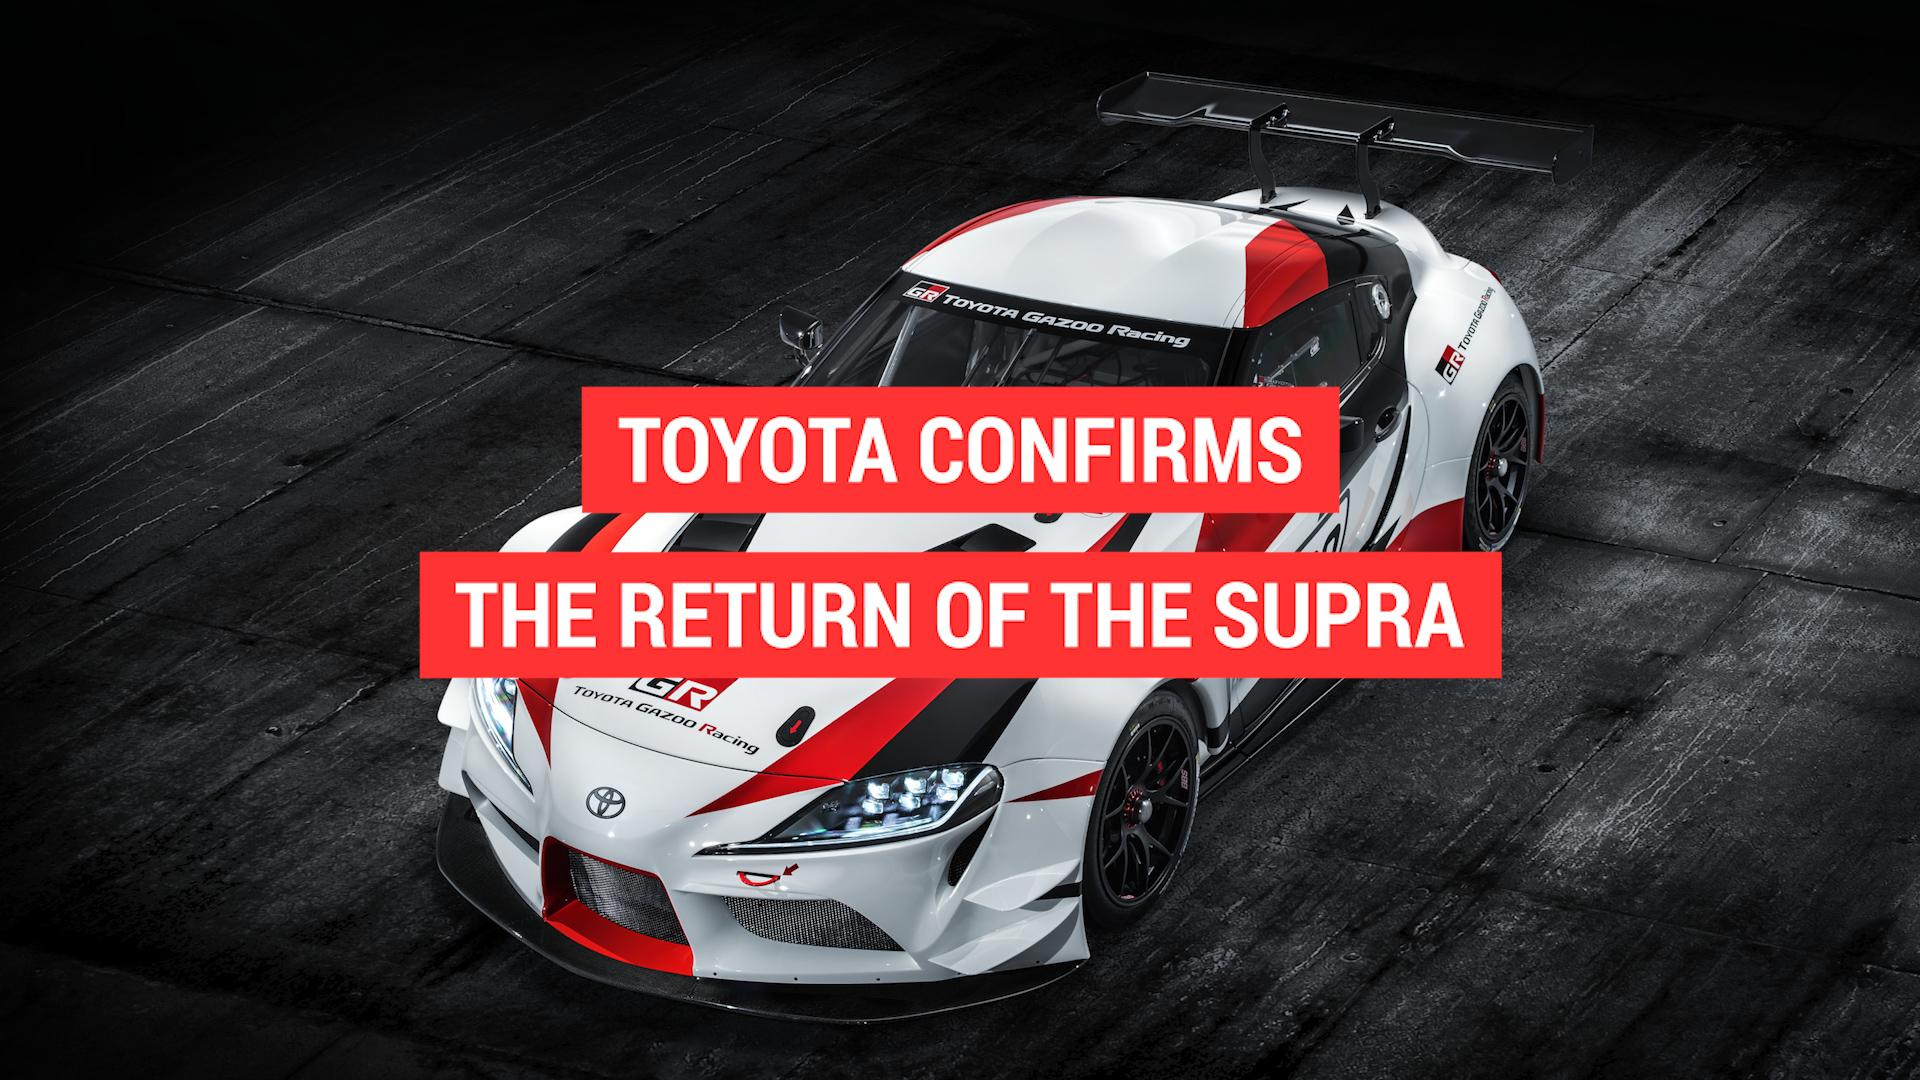 Toyota Supra camouflage pattern inspires Christmas wrapping paper - Autoblog 5d4e88d2c0